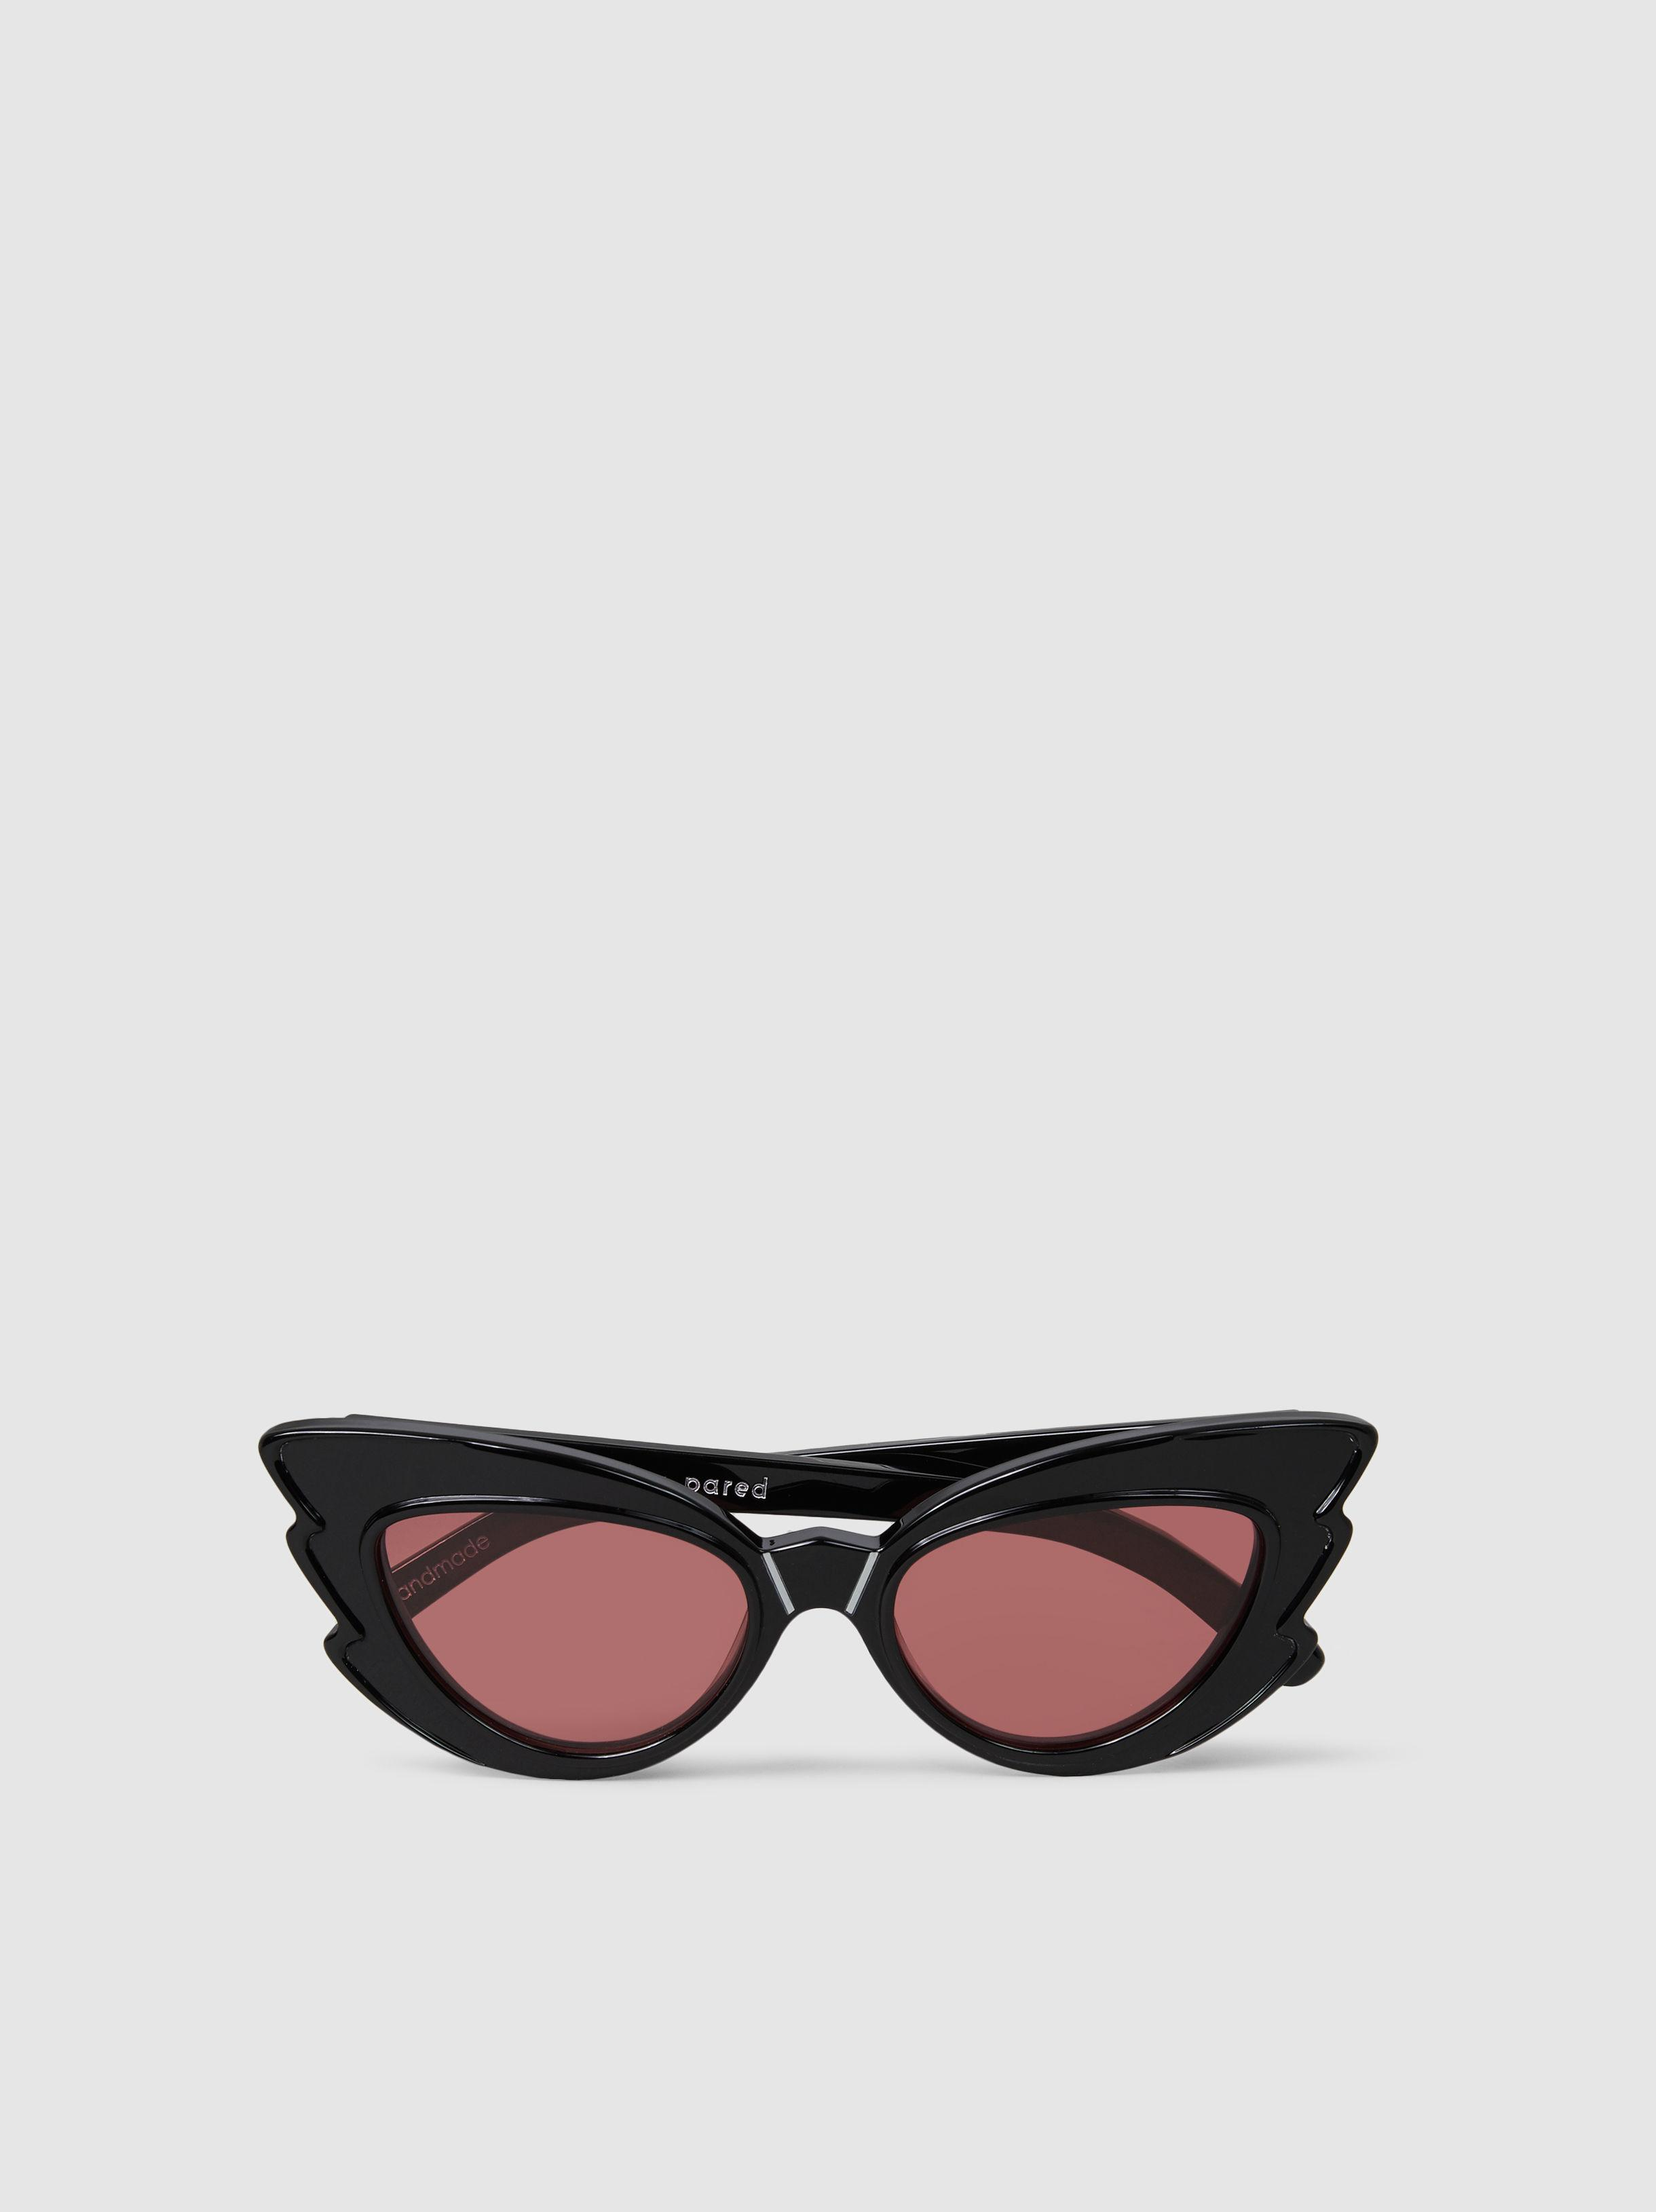 9a70c012b1 Lyst - Pared Eyewear Stargazers Cat-eye Acetate Sunglasses in Black